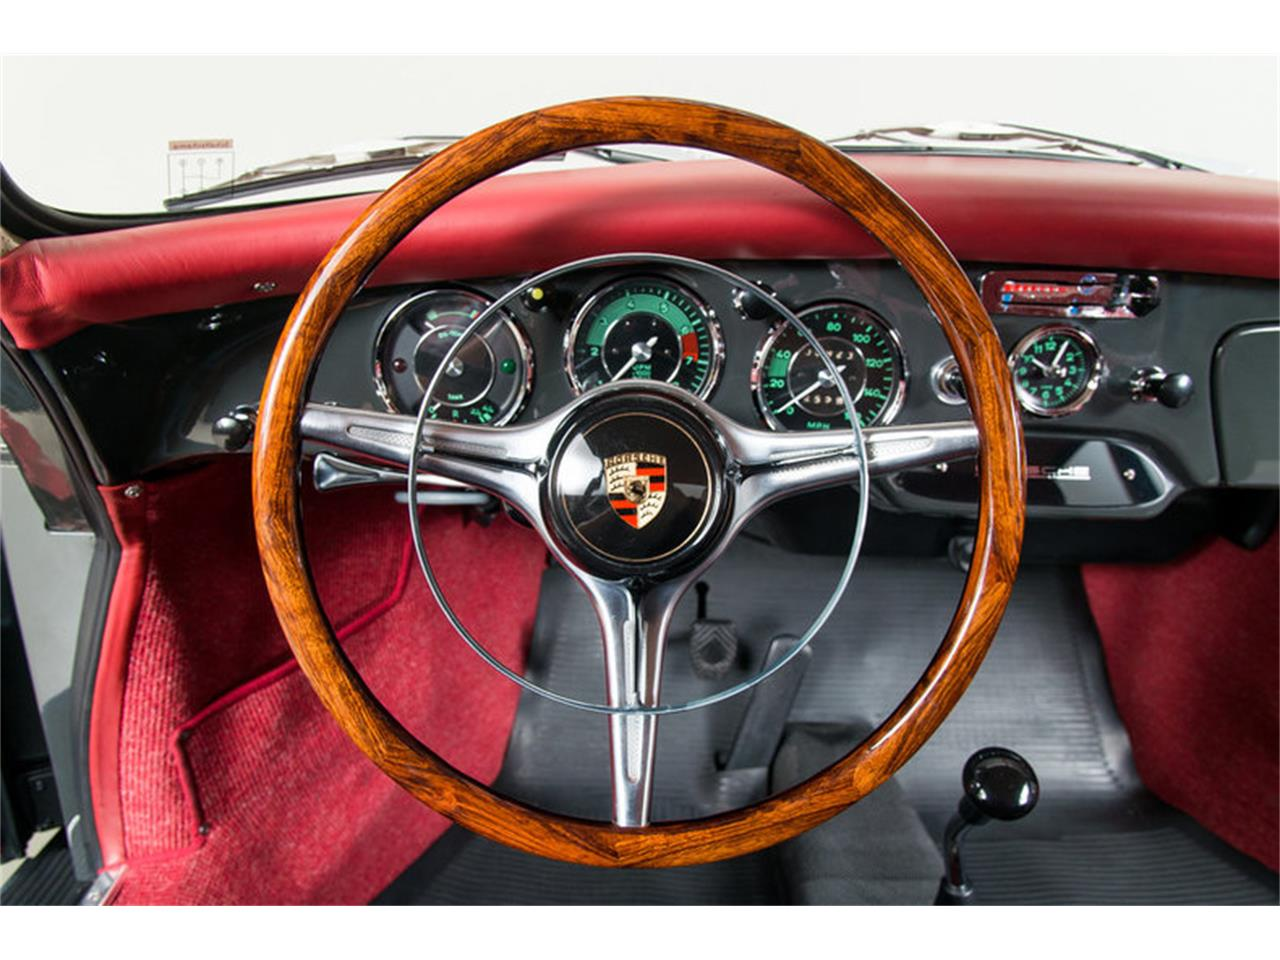 Large Picture of '63 356 Carrera 2 Coupe - KCE4